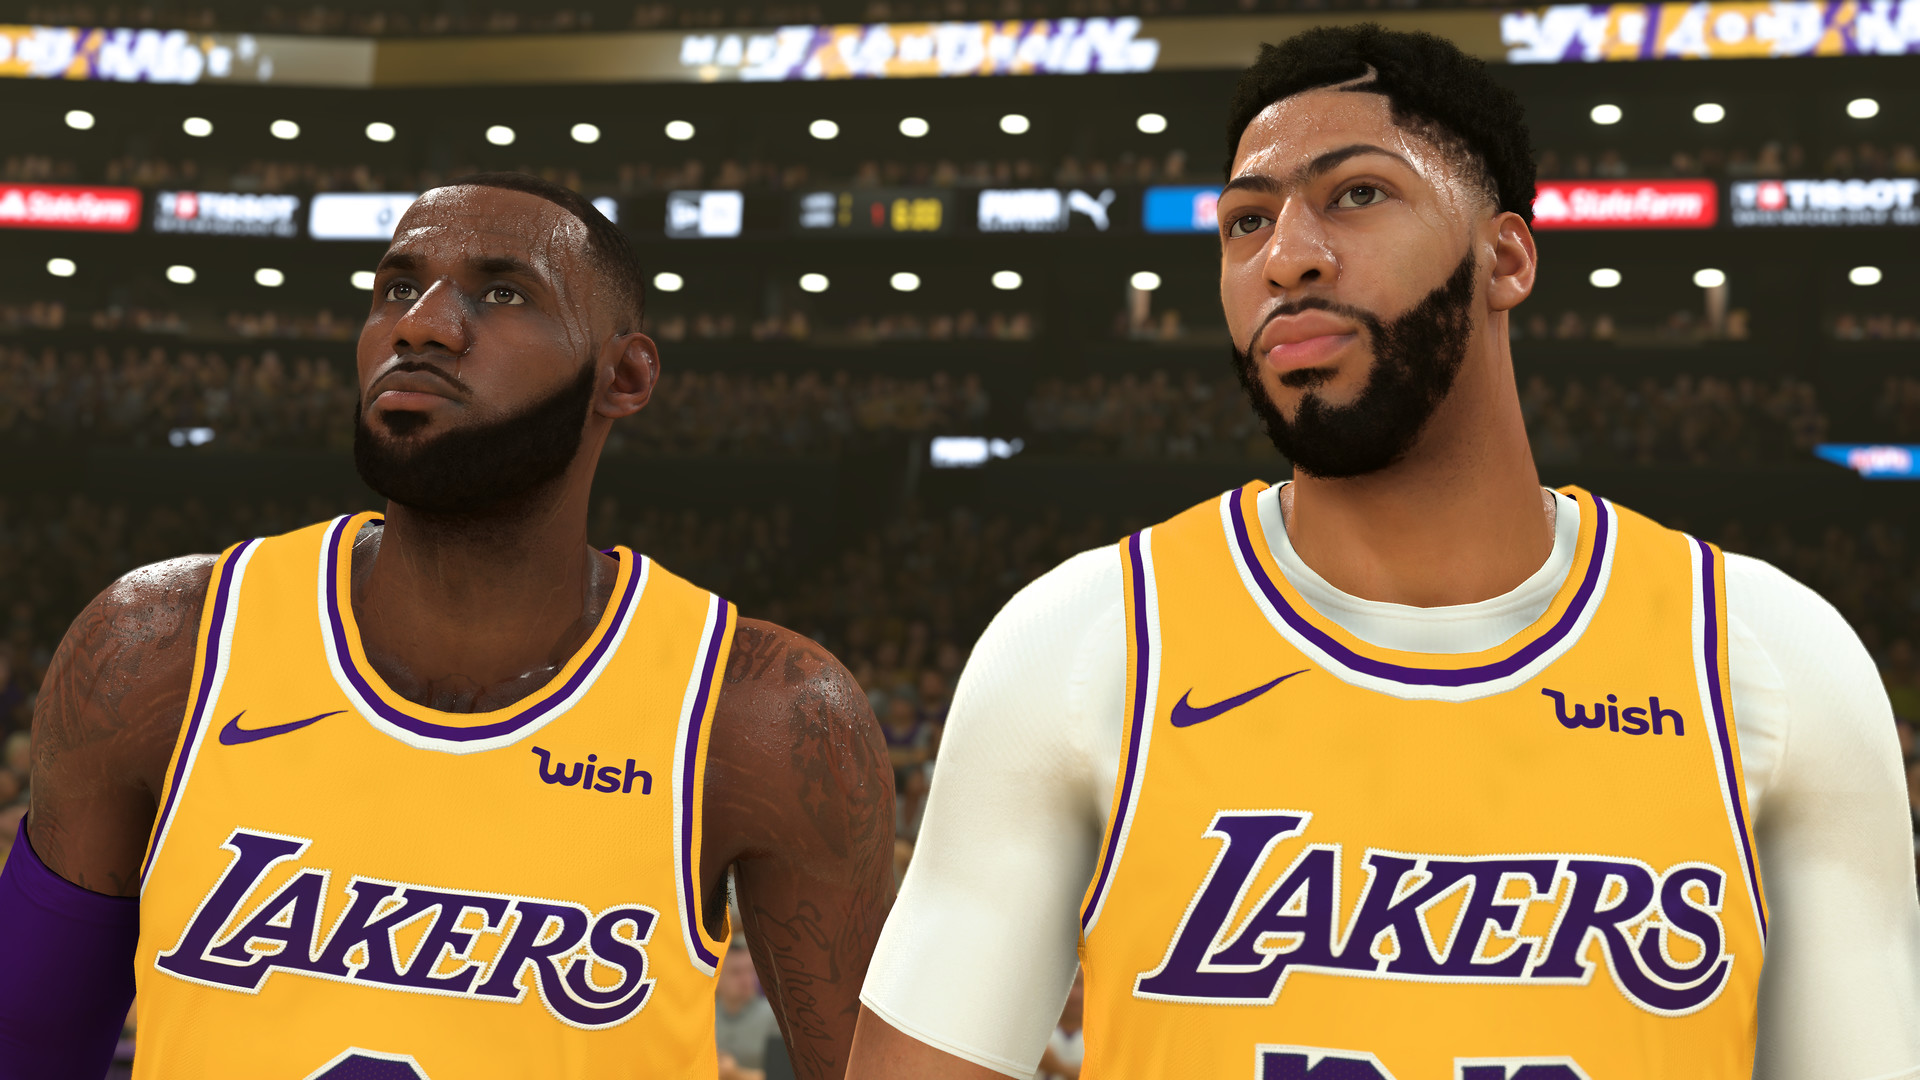 A screenshot from NBA 2K20.